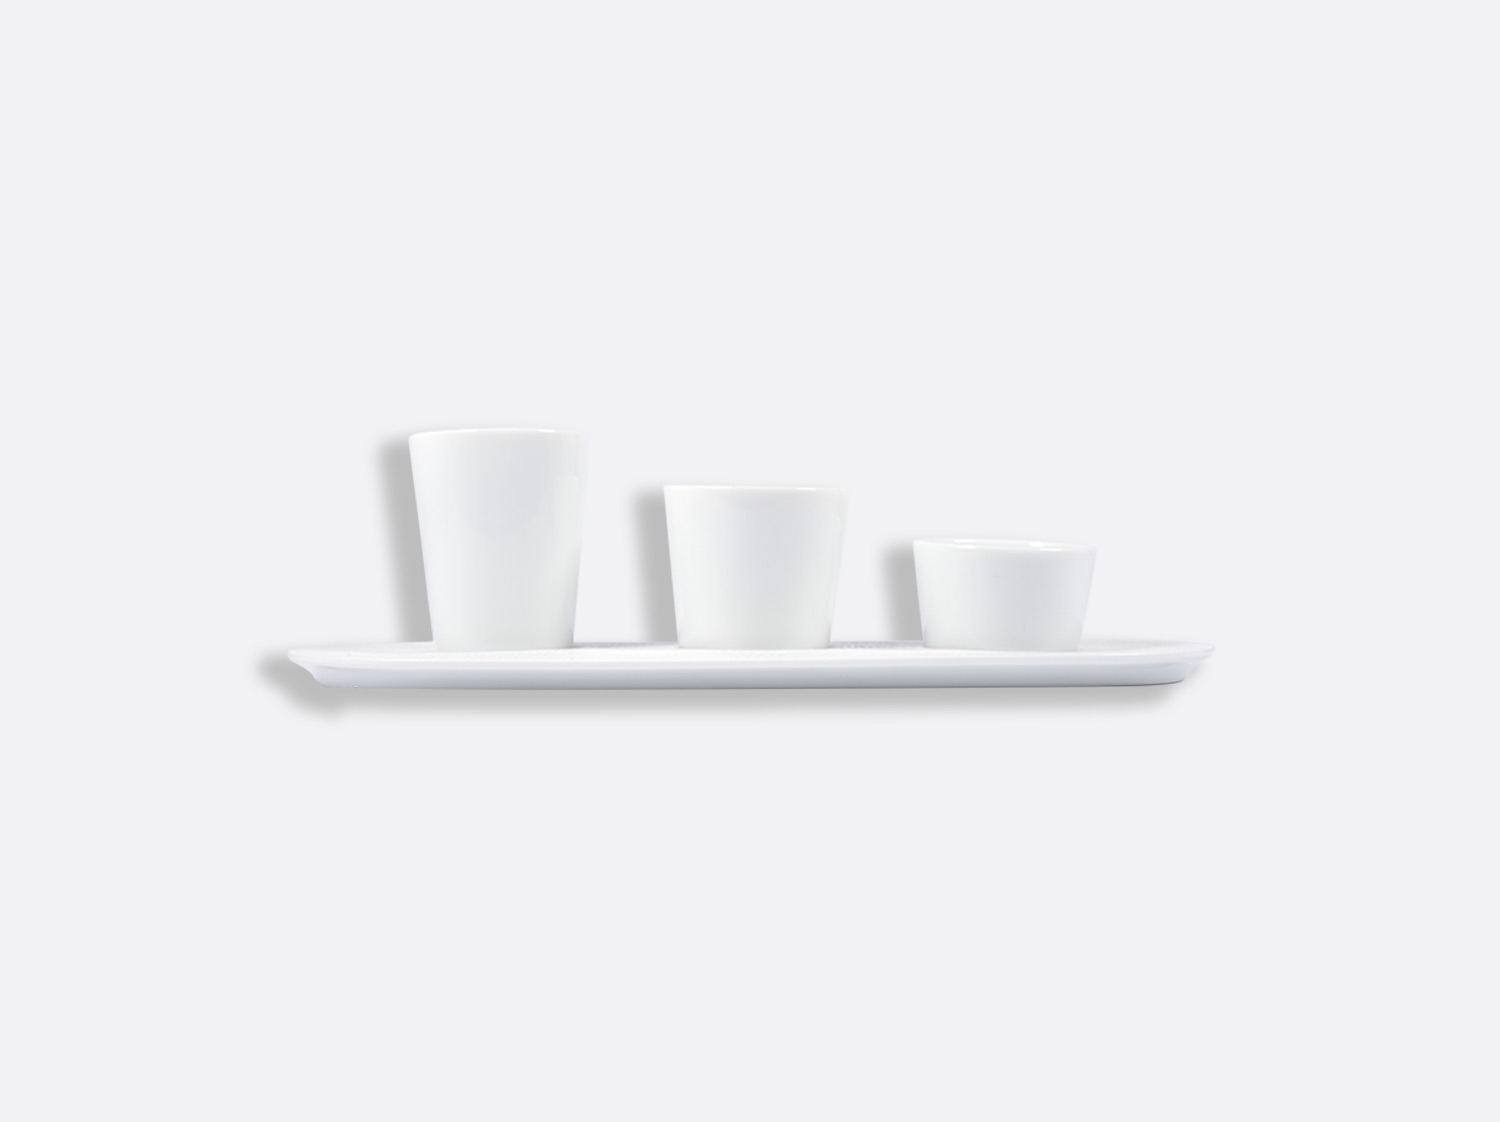 Plateau support 3 timbales (plateau seul) 30 cm en porcelaine de la collection ECUME BLANC Bernardaud